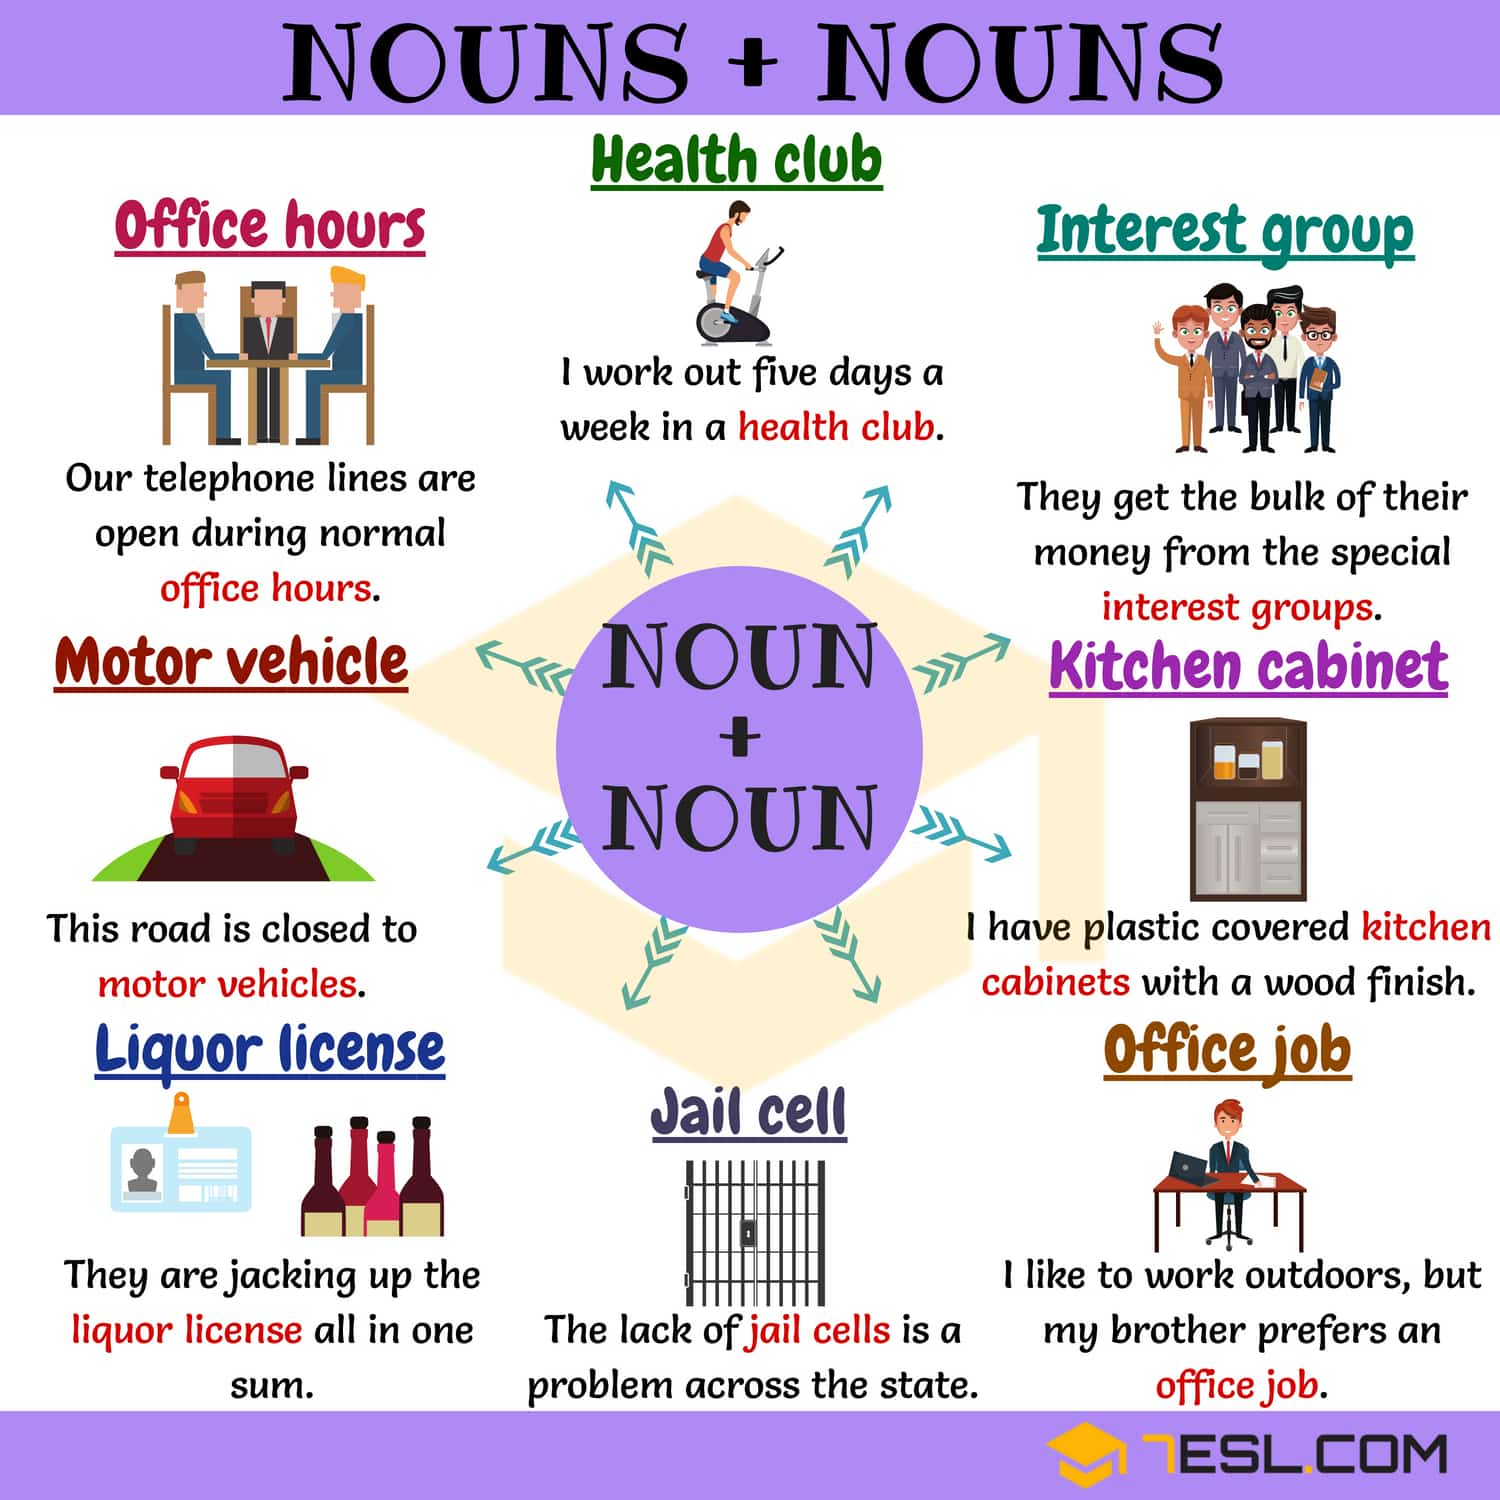 85 Useful Noun And Noun Combinations In English D O